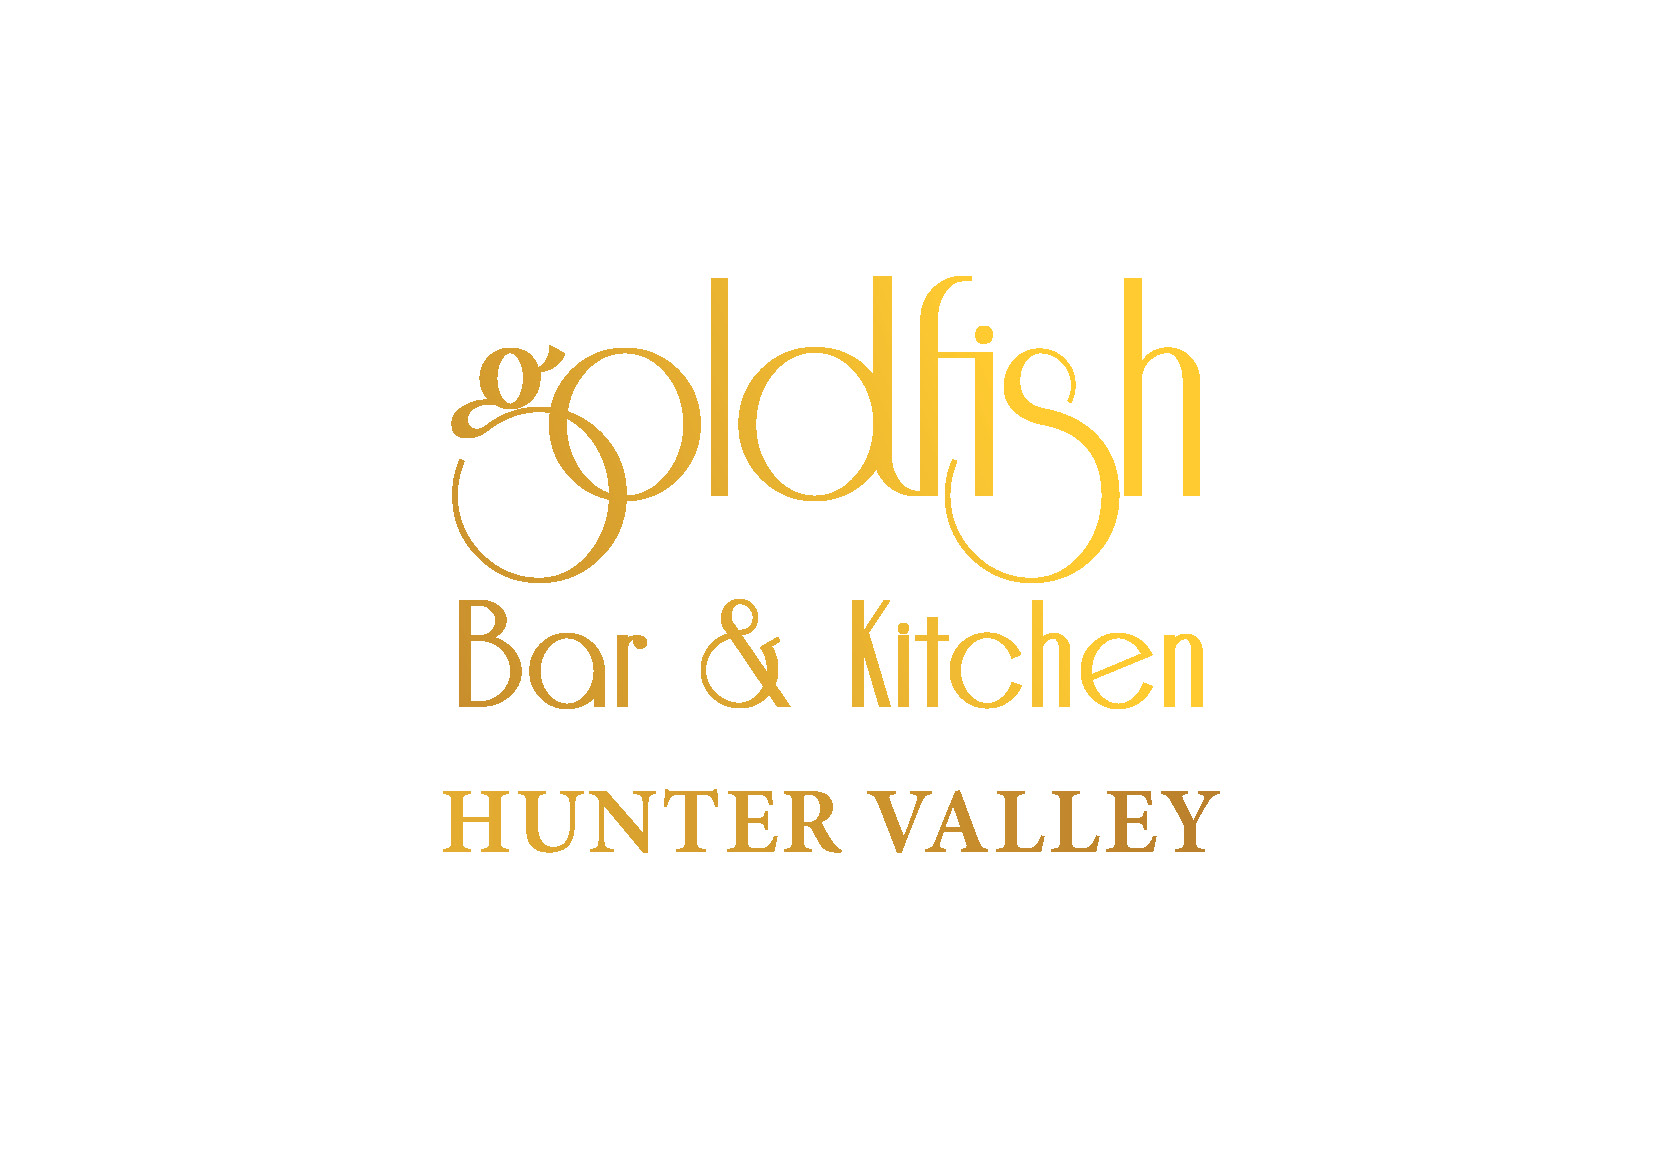 Goldfish Bar & Kitchen